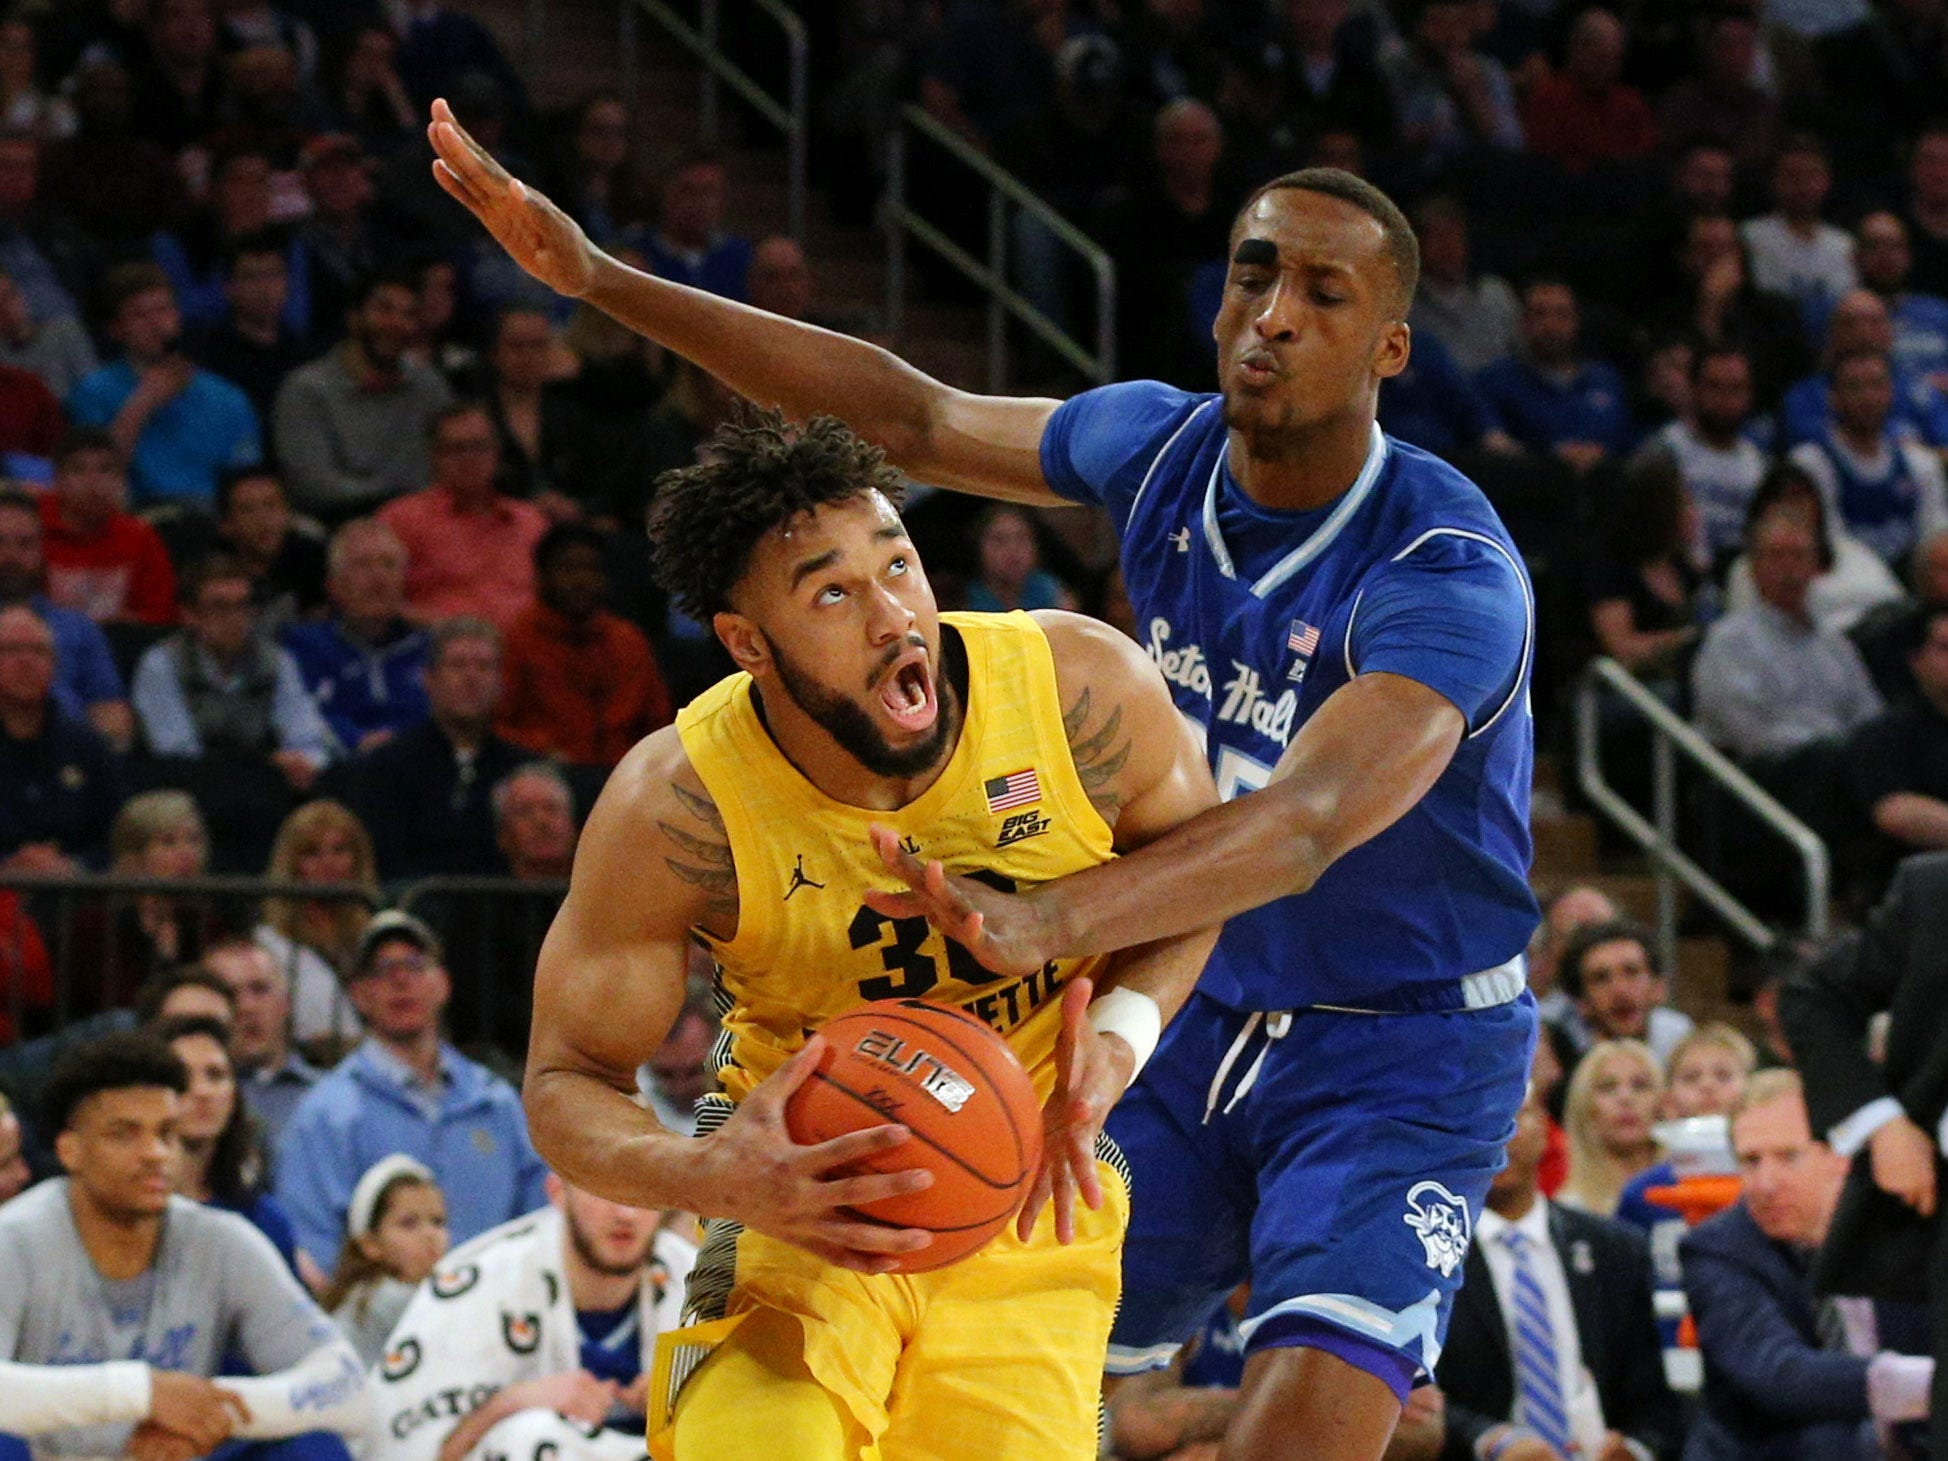 Marquette Golden Eagles forward Ed Morrow is fouled as he drives by Seton Hall's Romaro Gill.